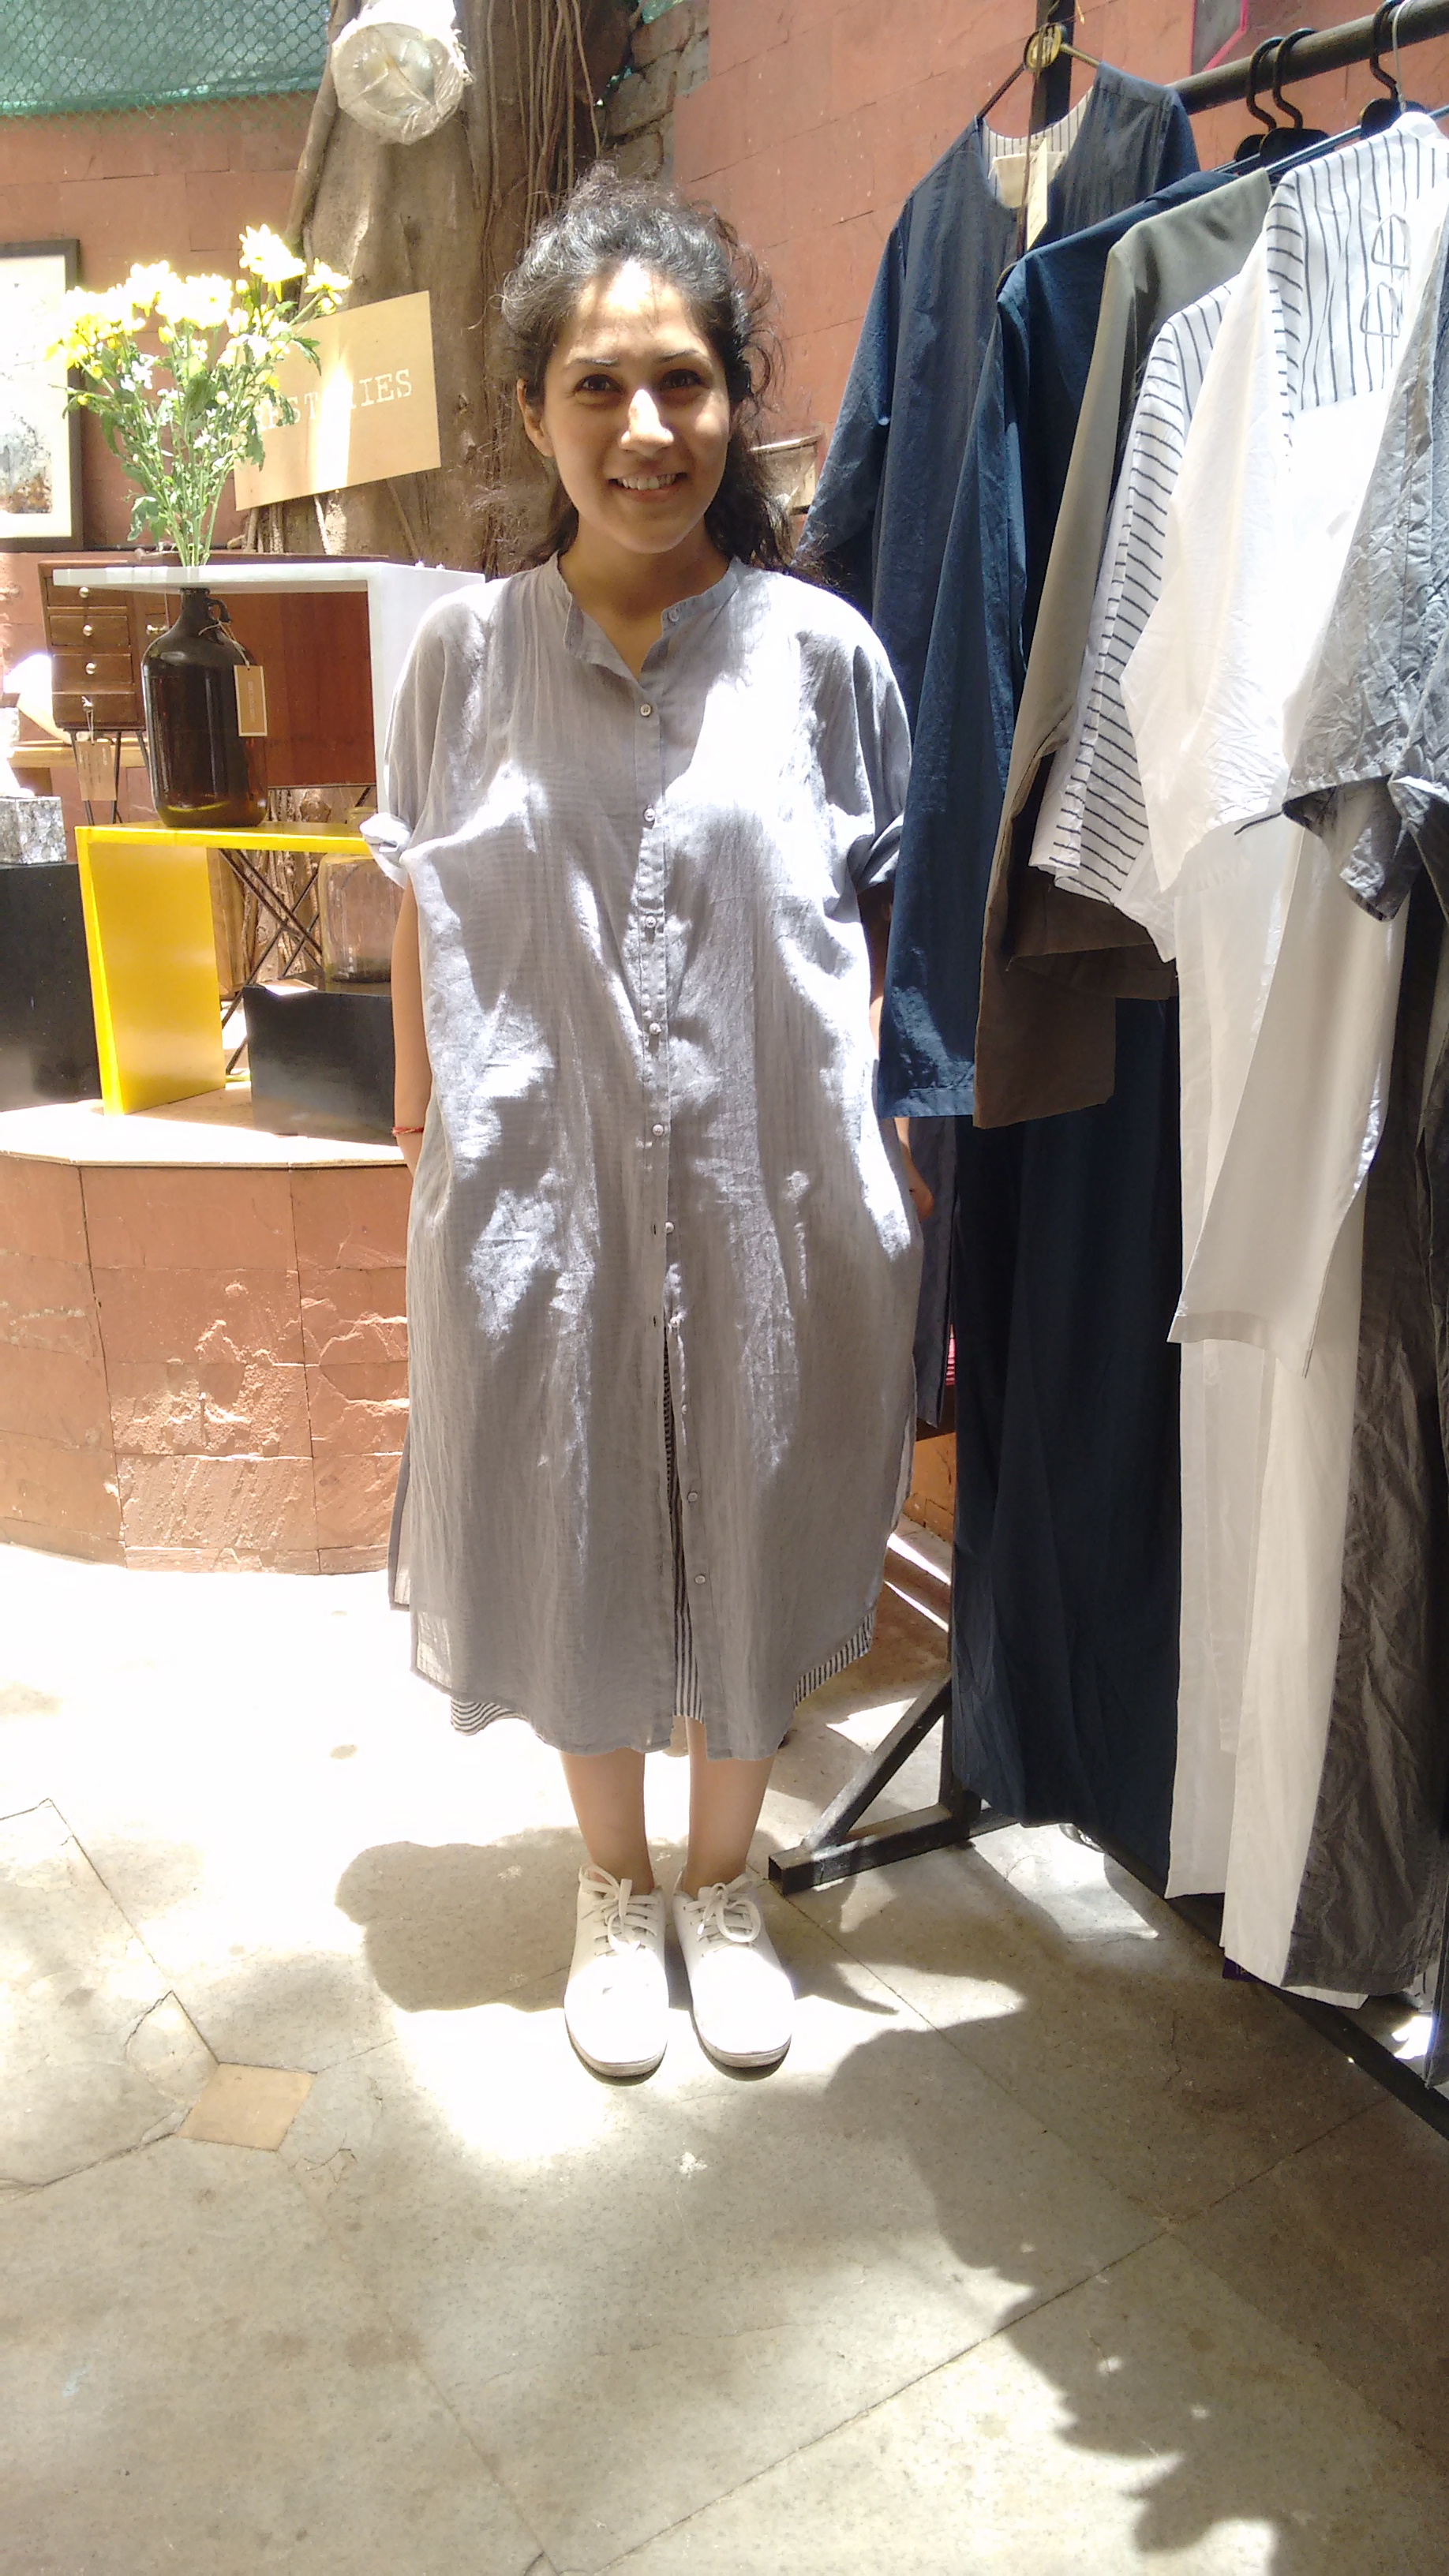 Pallavi Dhyani wearing her own creation from THREE at the Vintage Garden. Her collection is fabricated from cotton and linen and has plenty of stripes. She wears her THREE shirt dress with a striped under-slip and white sneakers. At the Vintage Garden, Bandra, Mumbai.